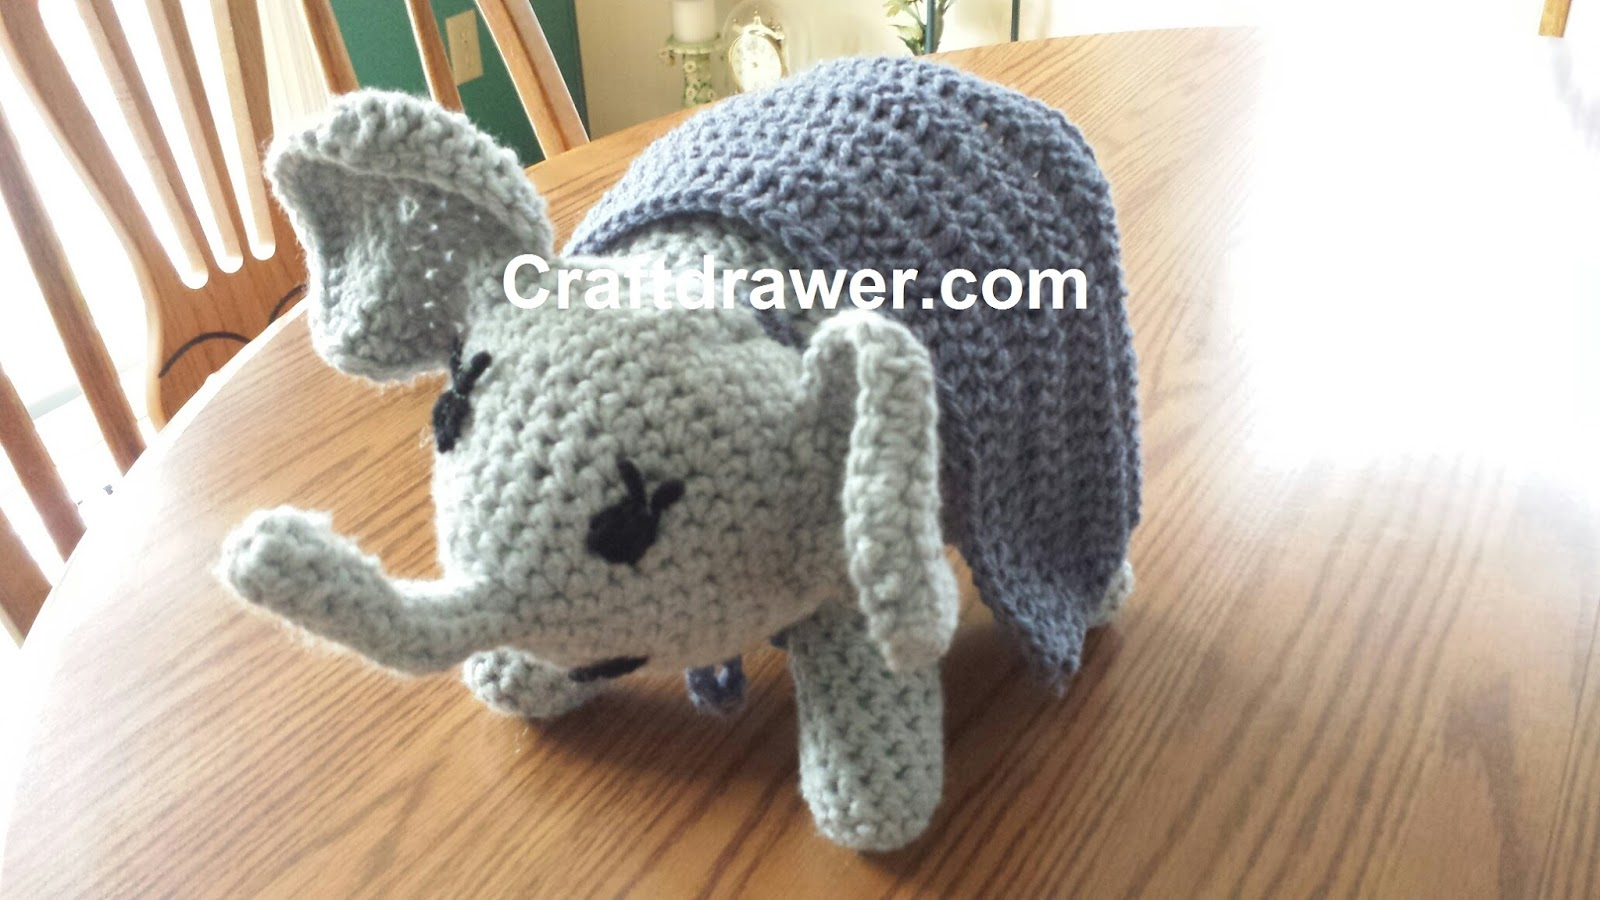 Craftdrawer crafts crochet an elephant pattern my journey to this pattern is much easier but again working with a free pattern i think there are some errors in the pattern and i am modifying it a bit bankloansurffo Images